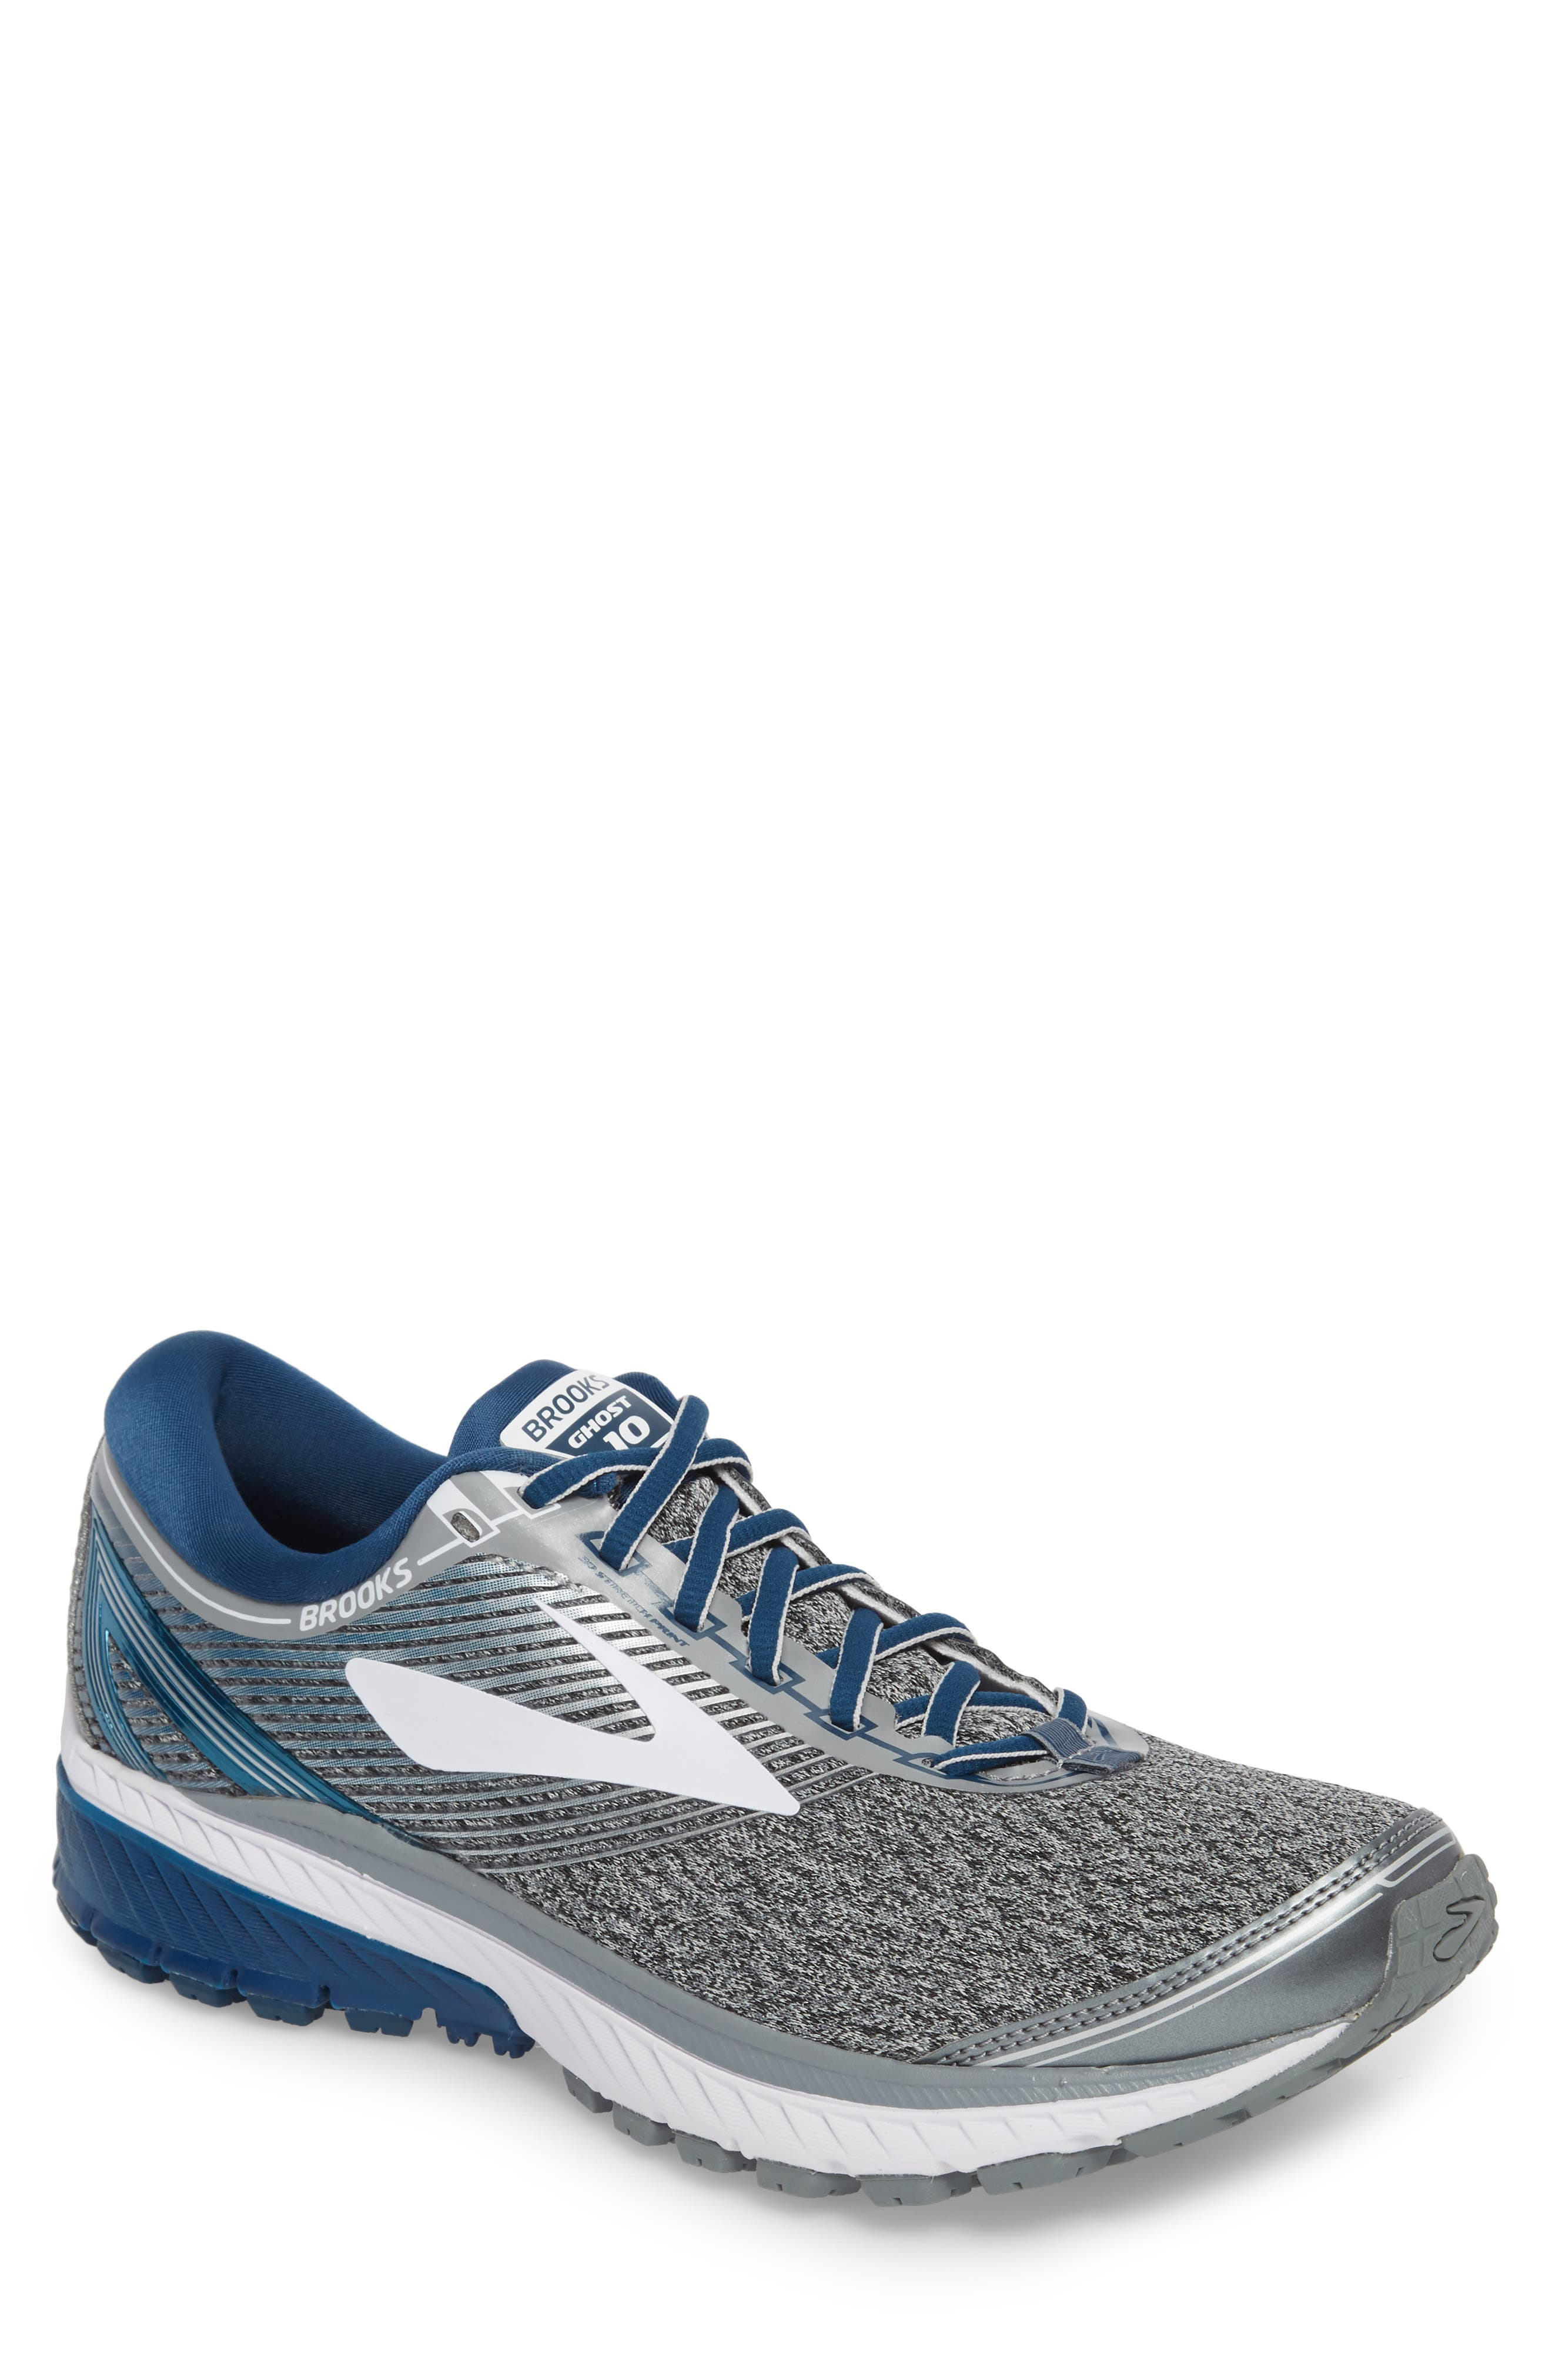 Ghost 10 Running Shoe,                             Main thumbnail 1, color,                             SILVER/ BLUE/ WHITE